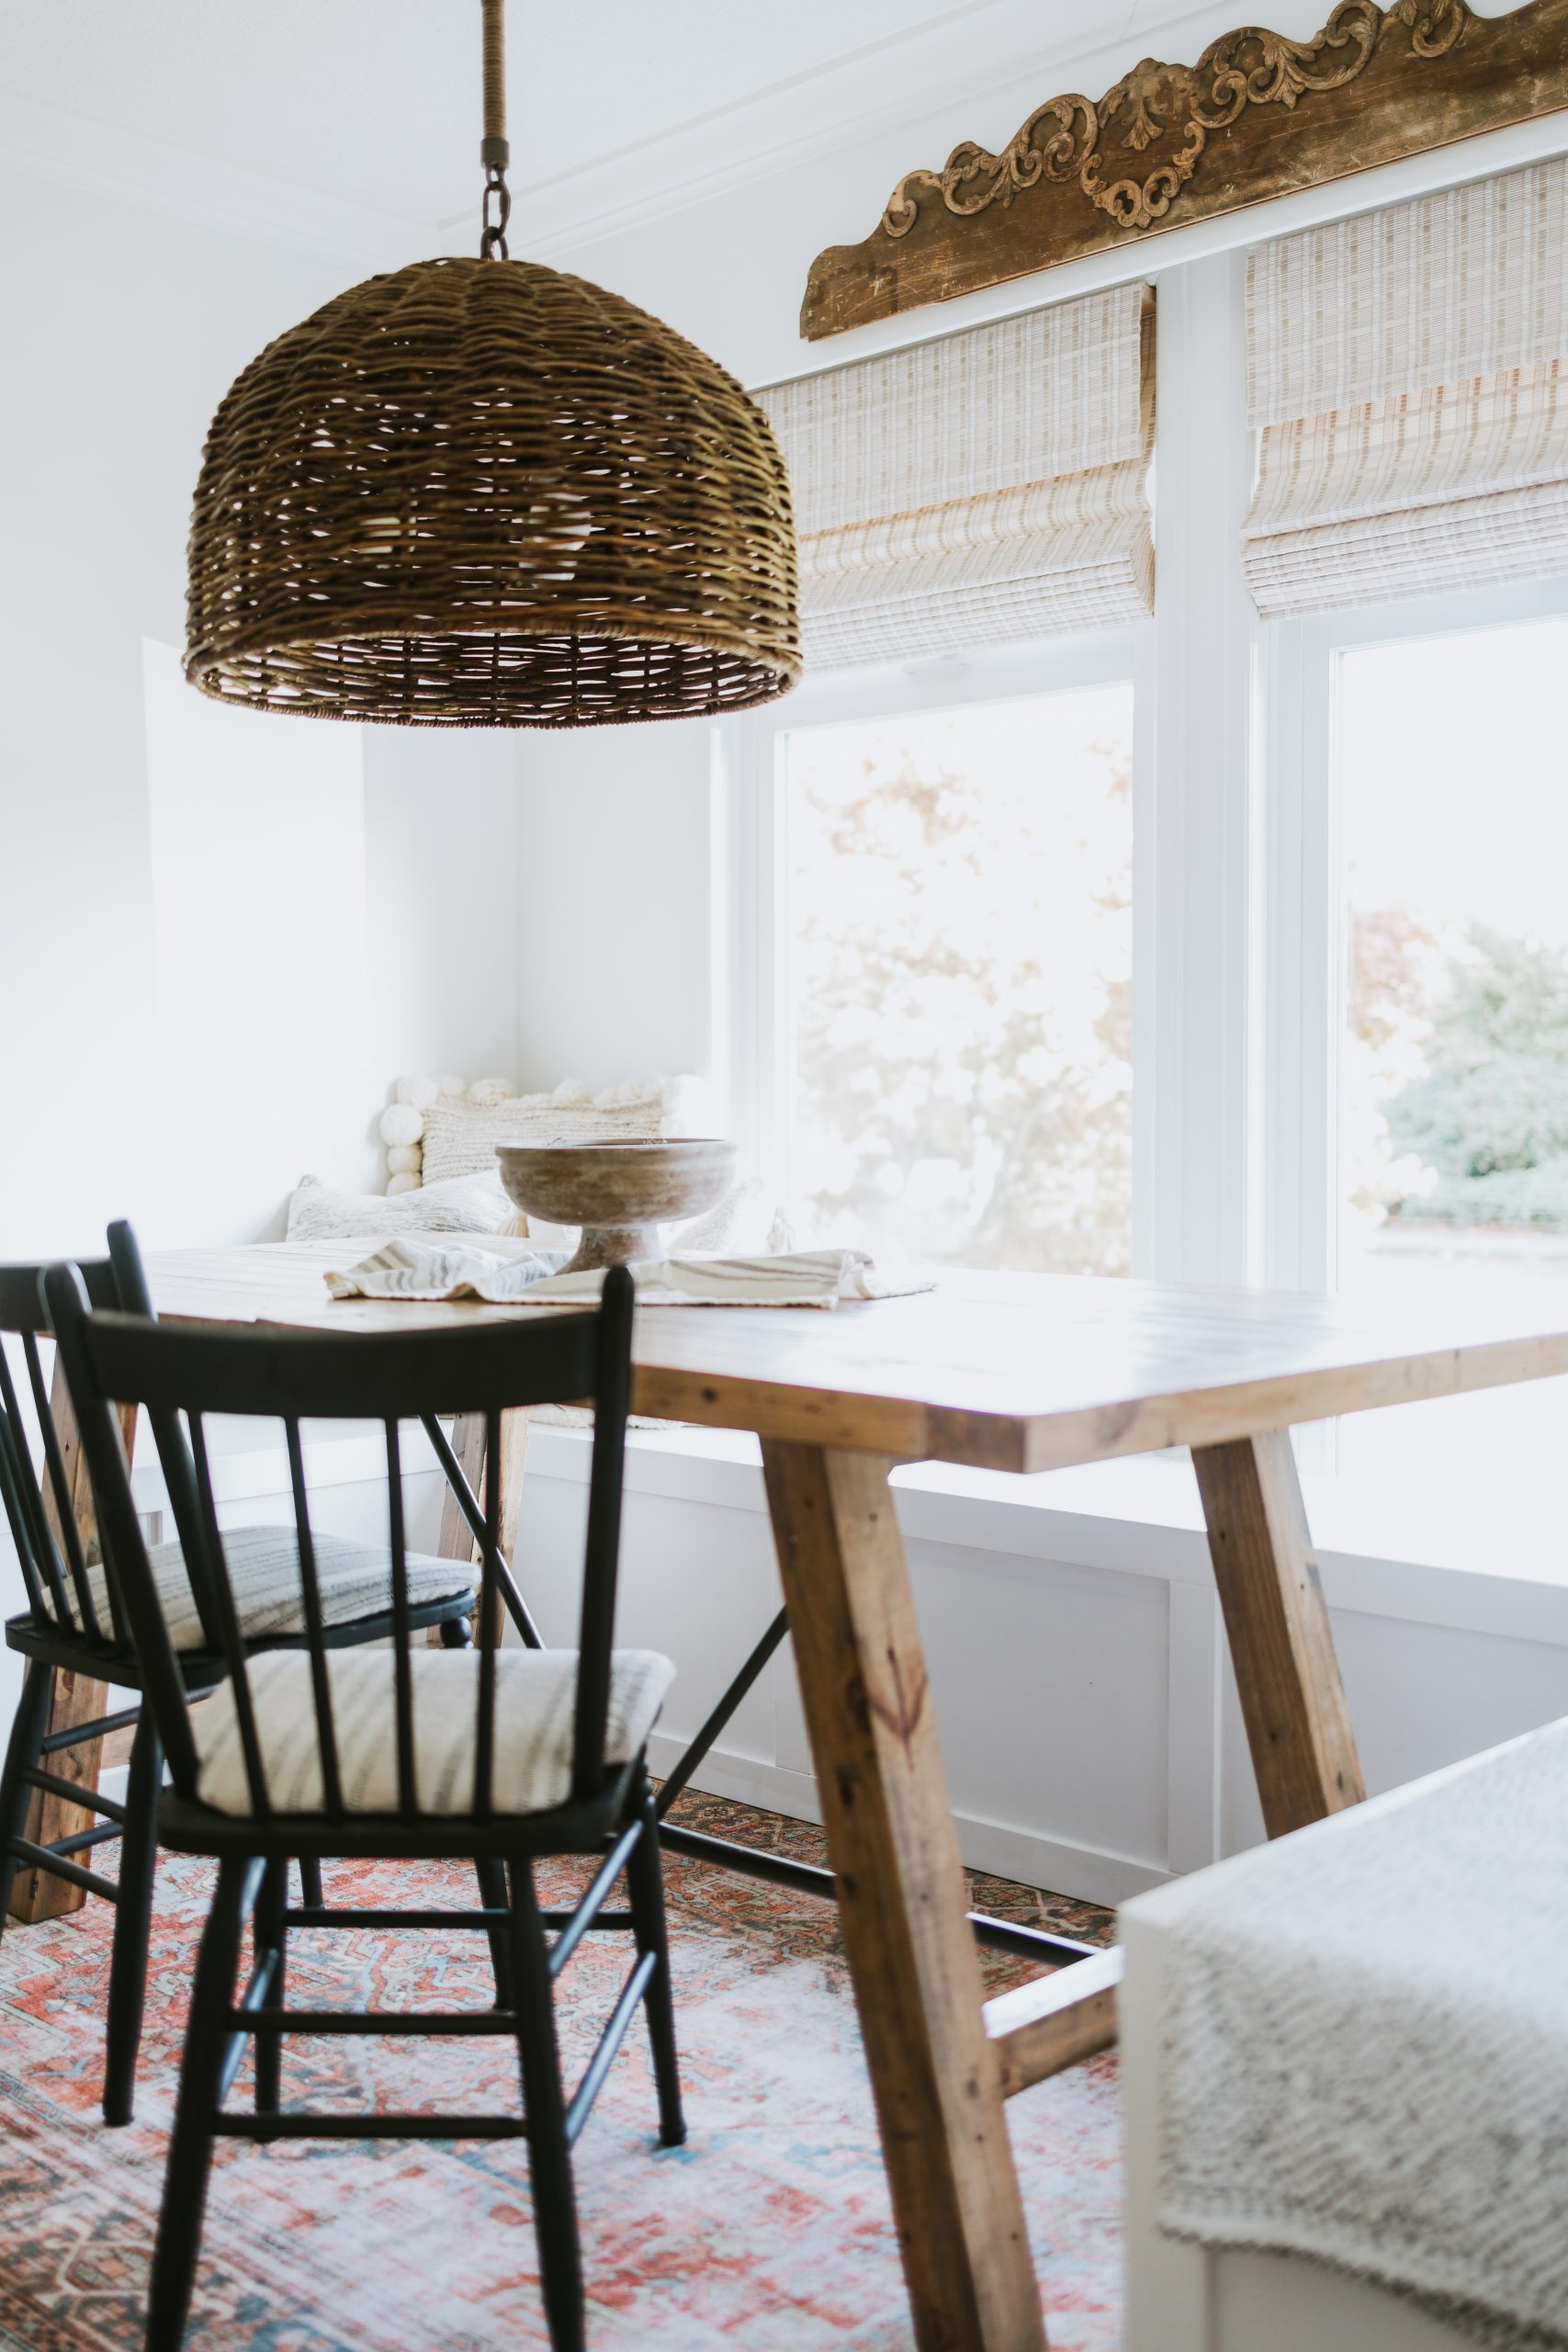 DIY Built-In Dining Room Seating. How We Built Our DIY Benches For Under 400 Dollars. We can Now Seat Up To 12 people instead of 6 around our table.